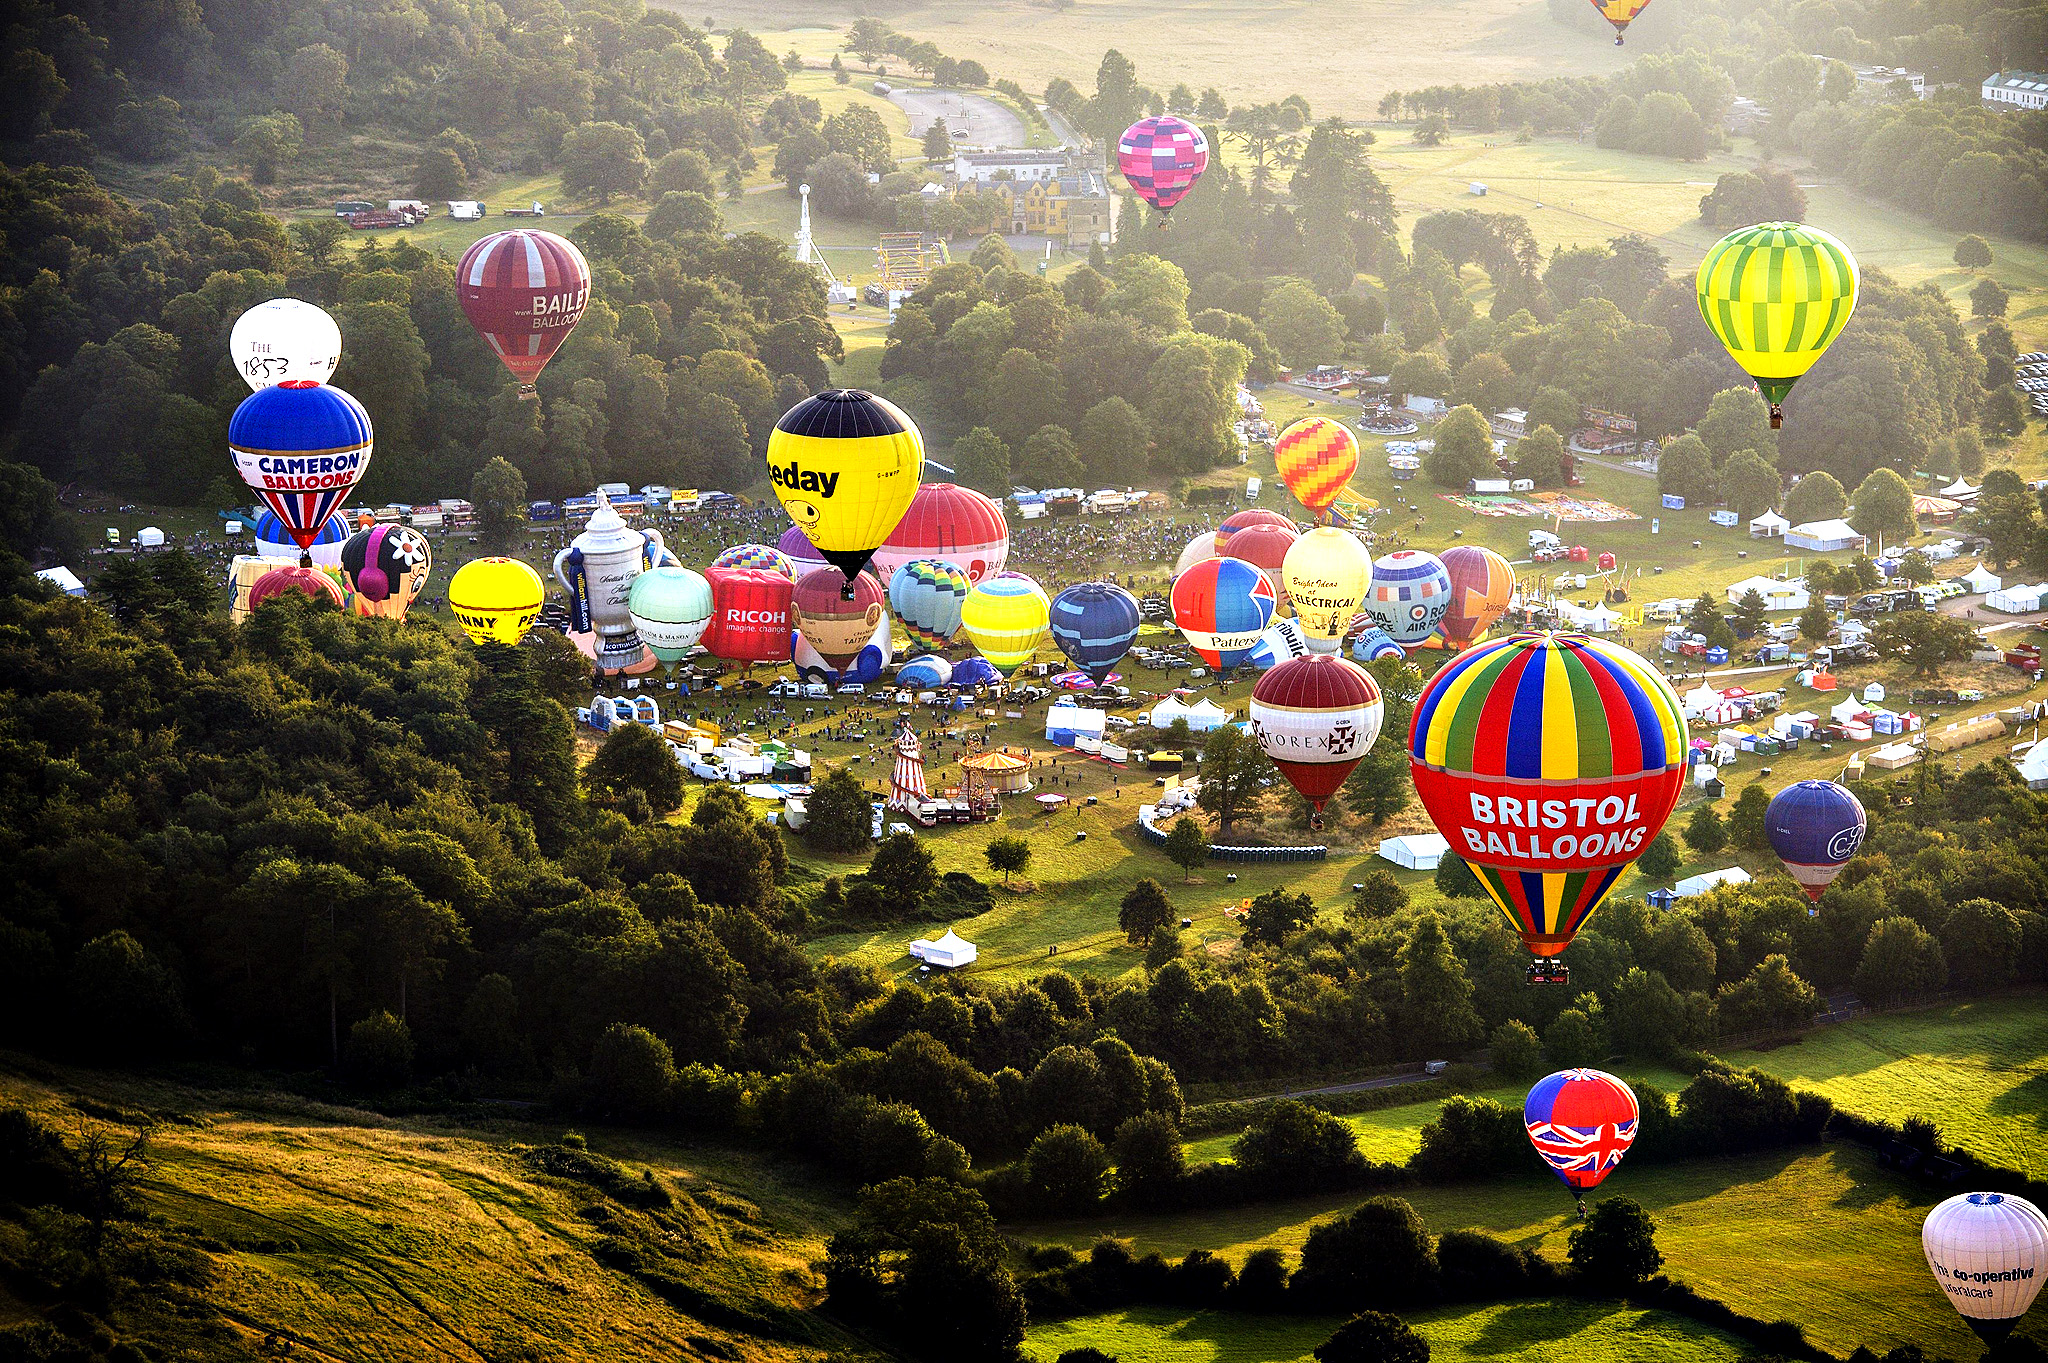 Hot air balloons lift off during a mass ascent at the 36th International Balloon Fiesta at the Ashton Court Estate near Bristol, which is Europe's largest ballooning event.